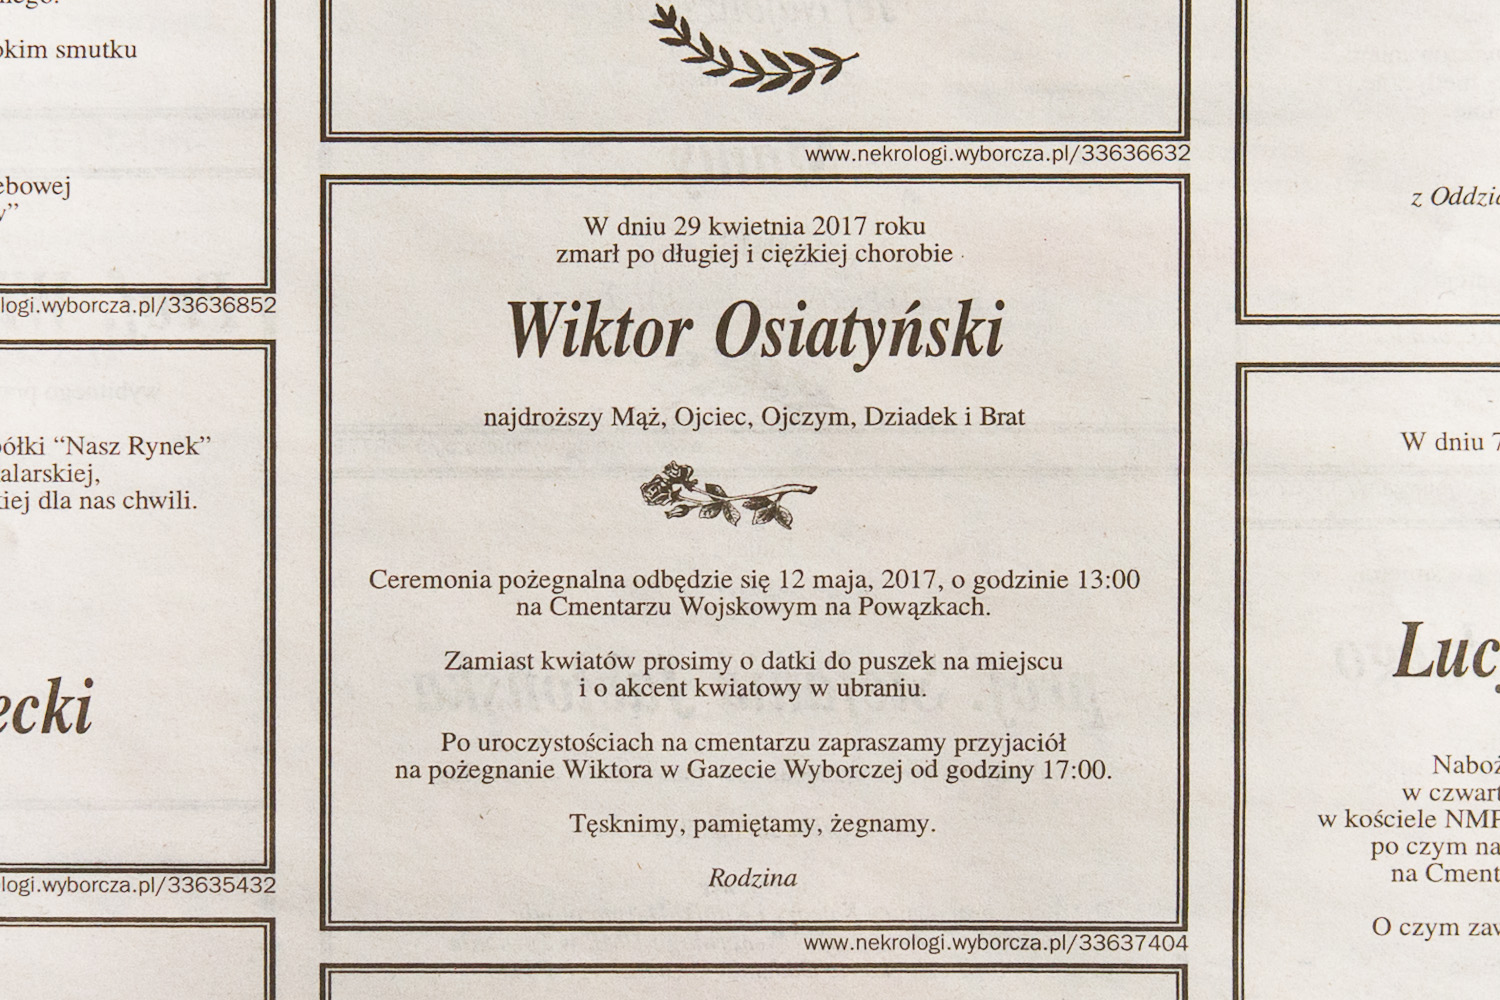 Our family's memorial notice in the newspaper, amid another day's torrent of the condolences from friends and institutions that helped us through the hardest of times.